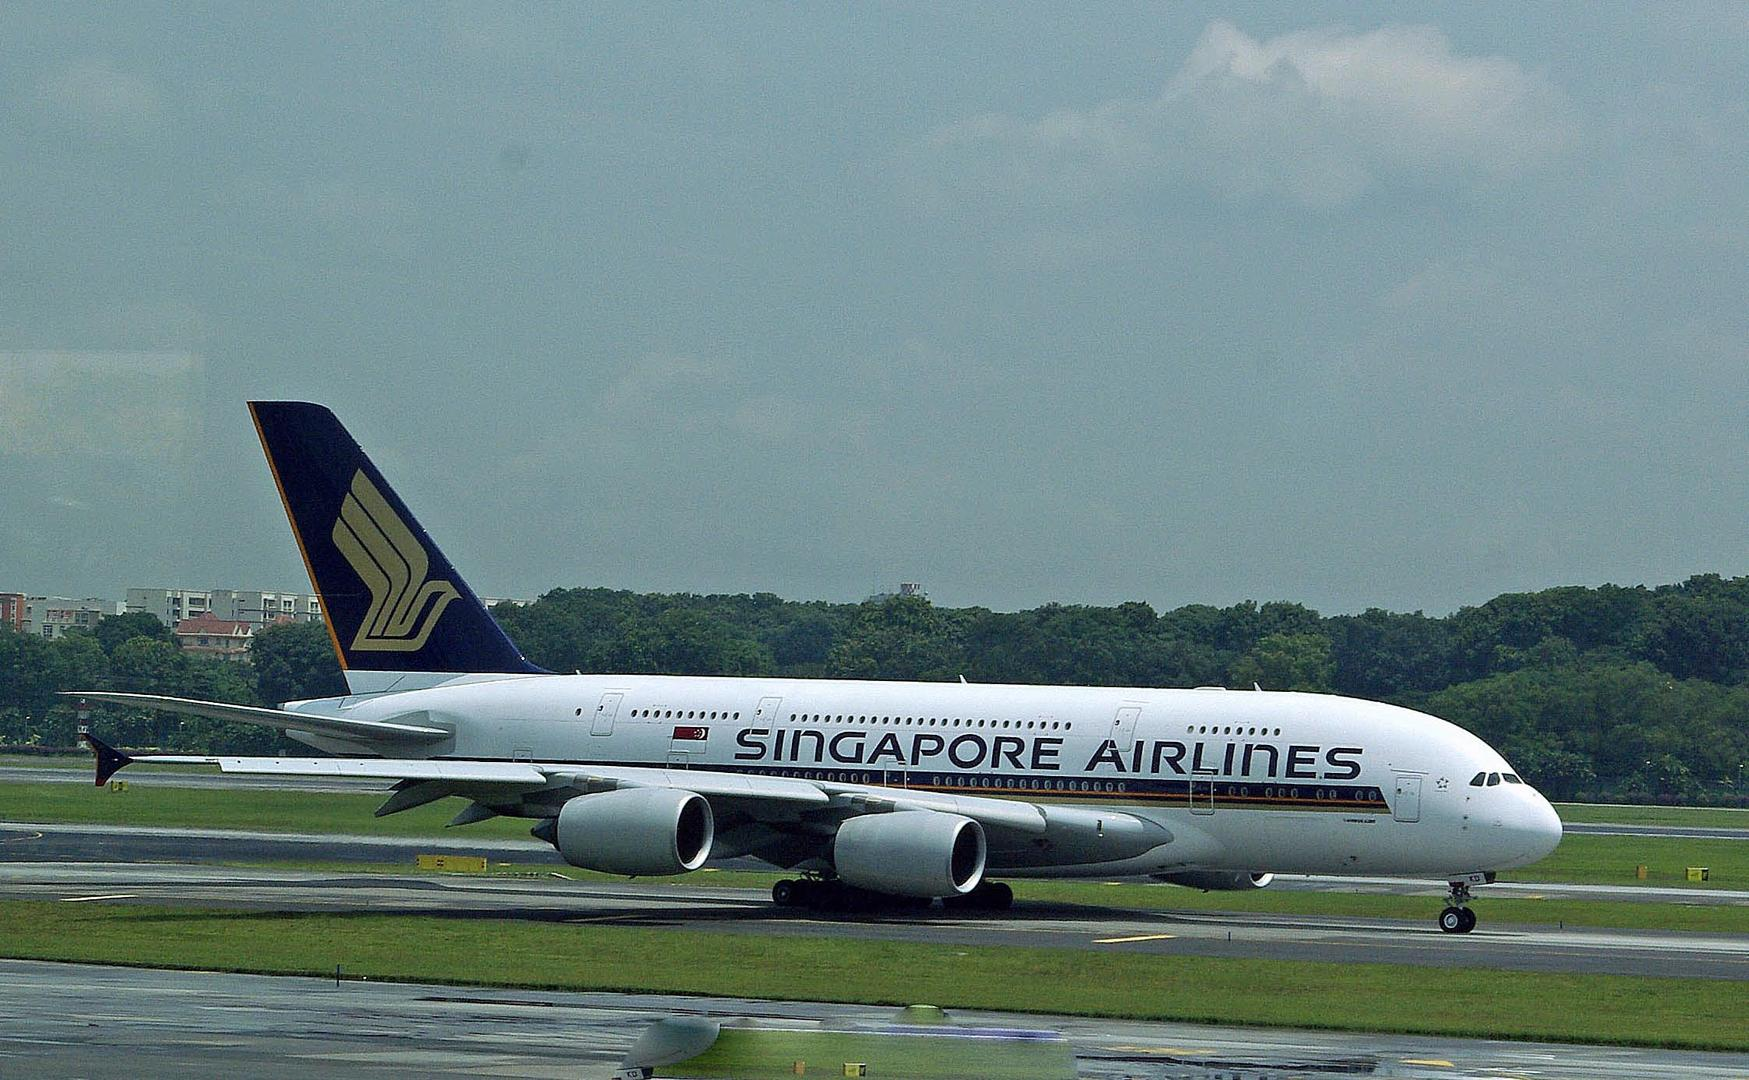 Singapur Airlines Airbus A380